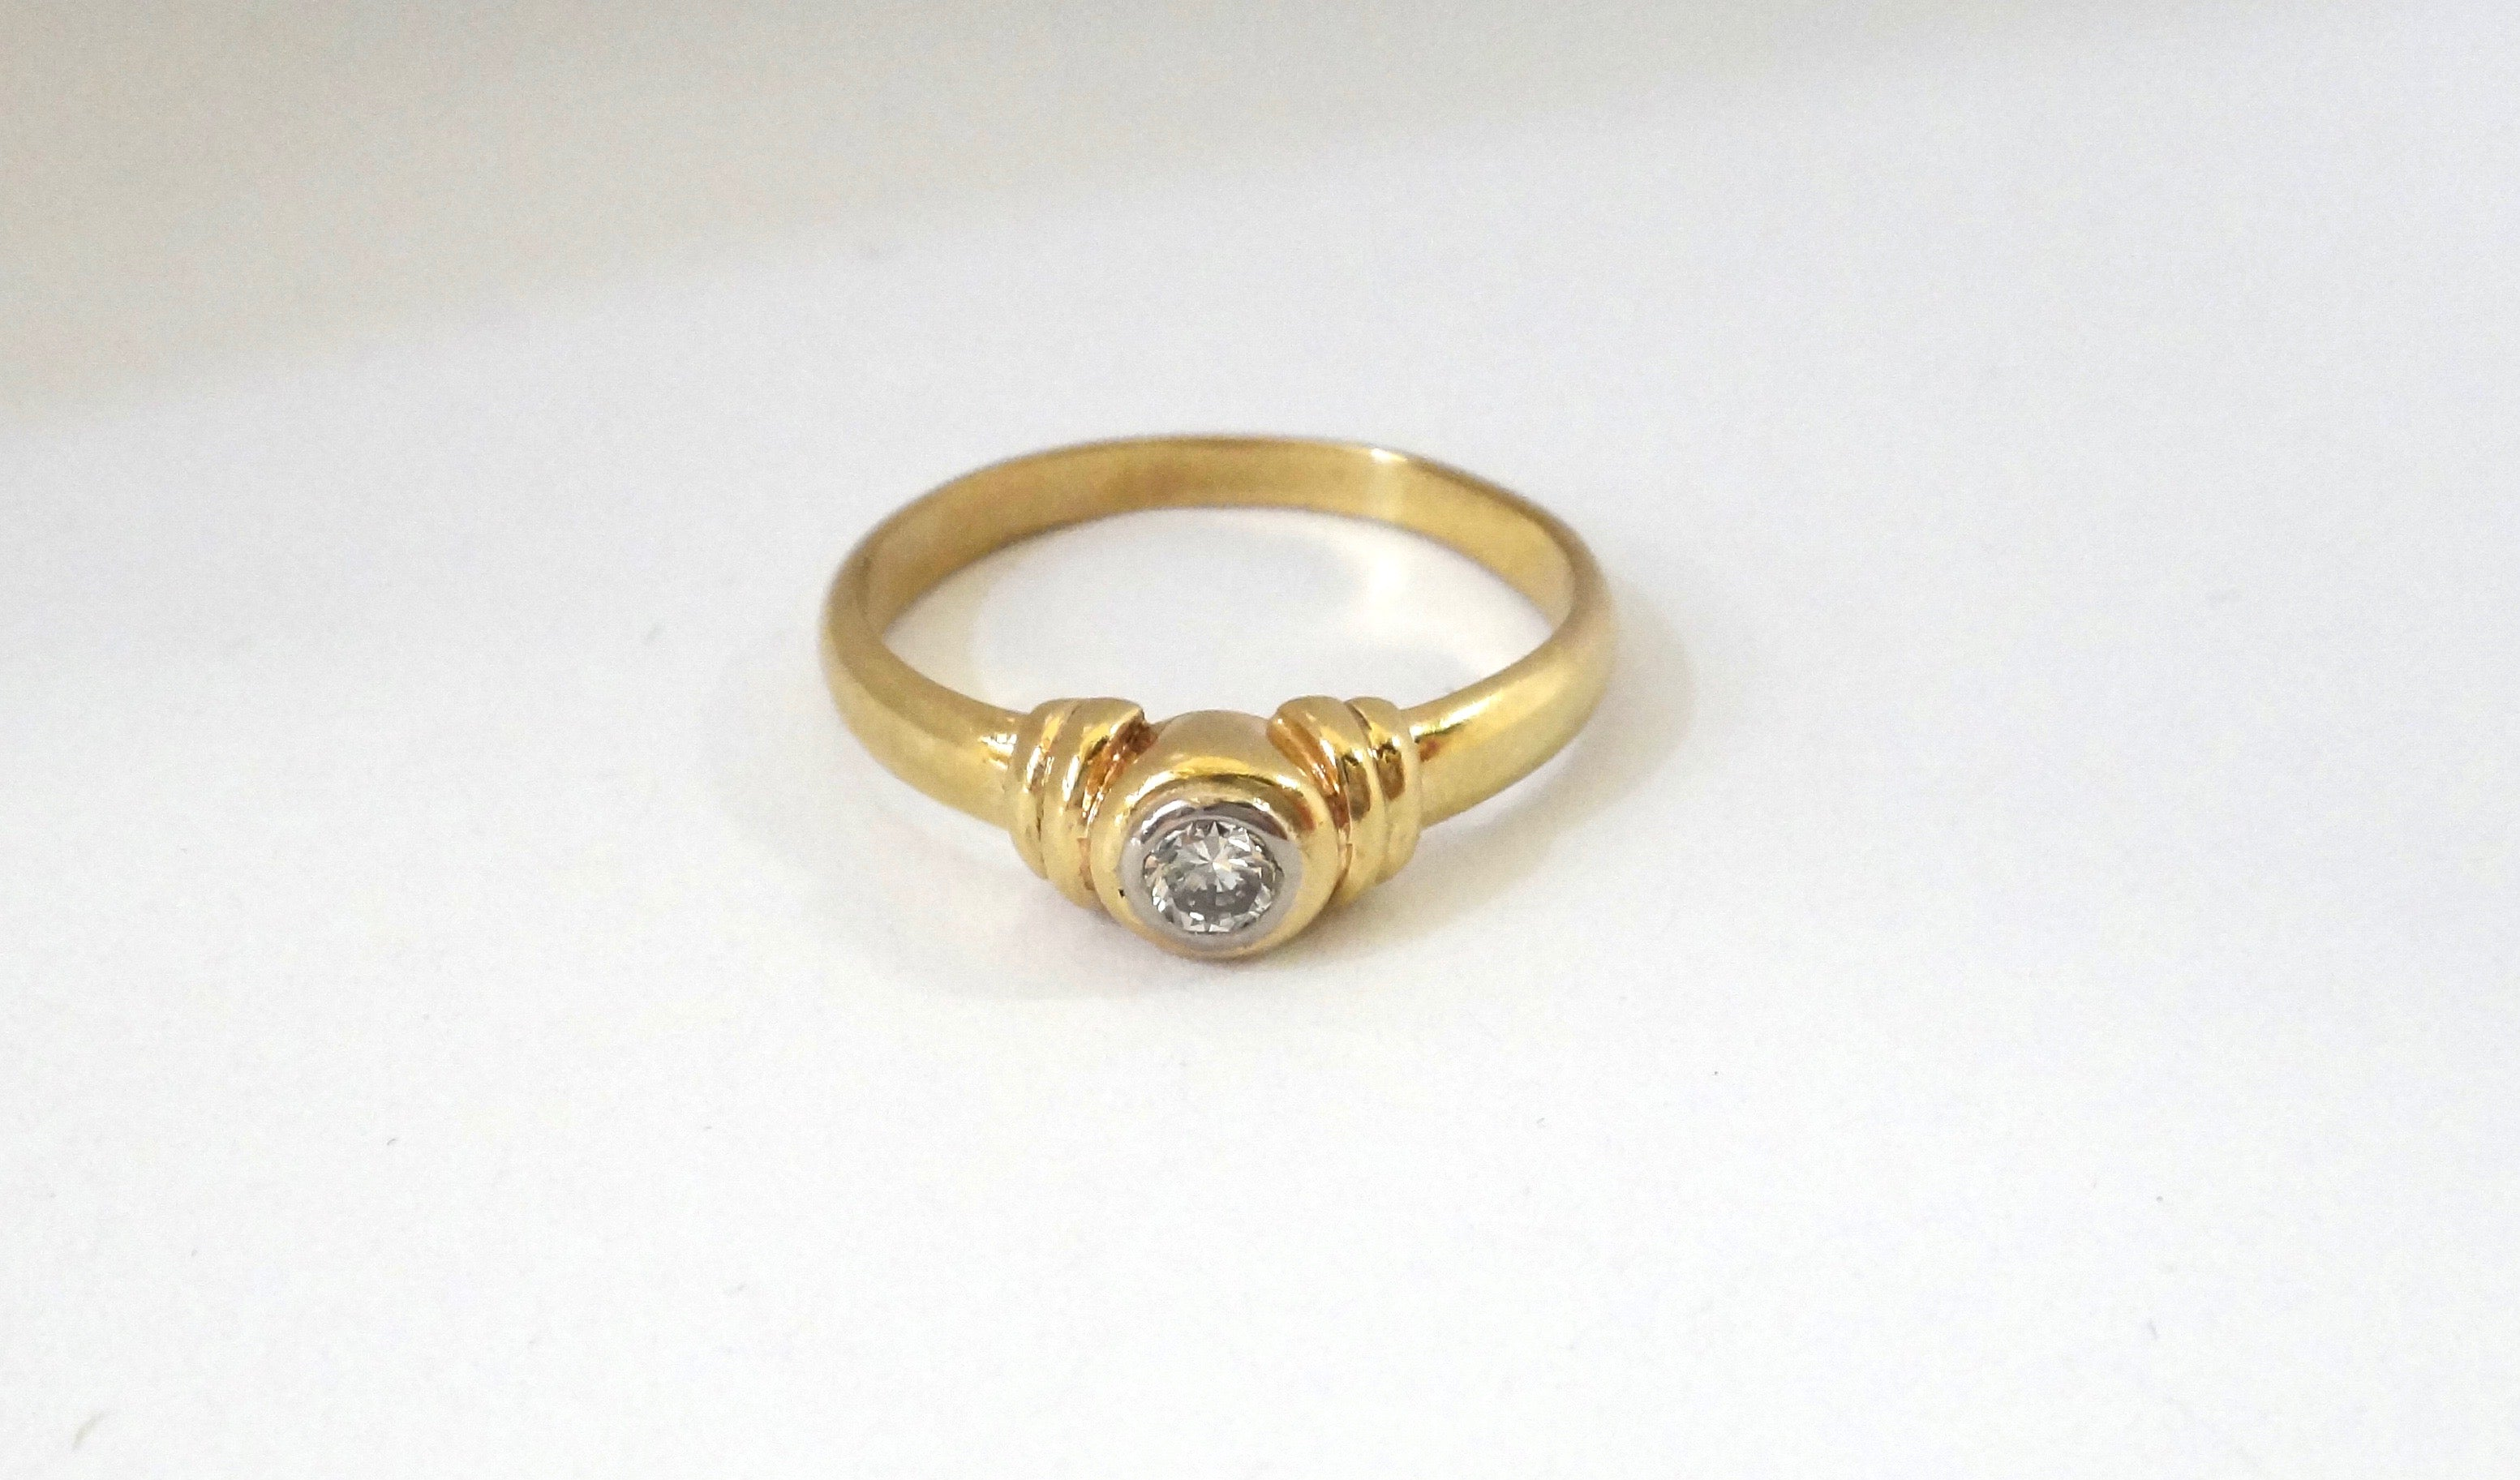 9CT Yellow GOLD & Collet Set Brilliant Cut DIAMOND Ring